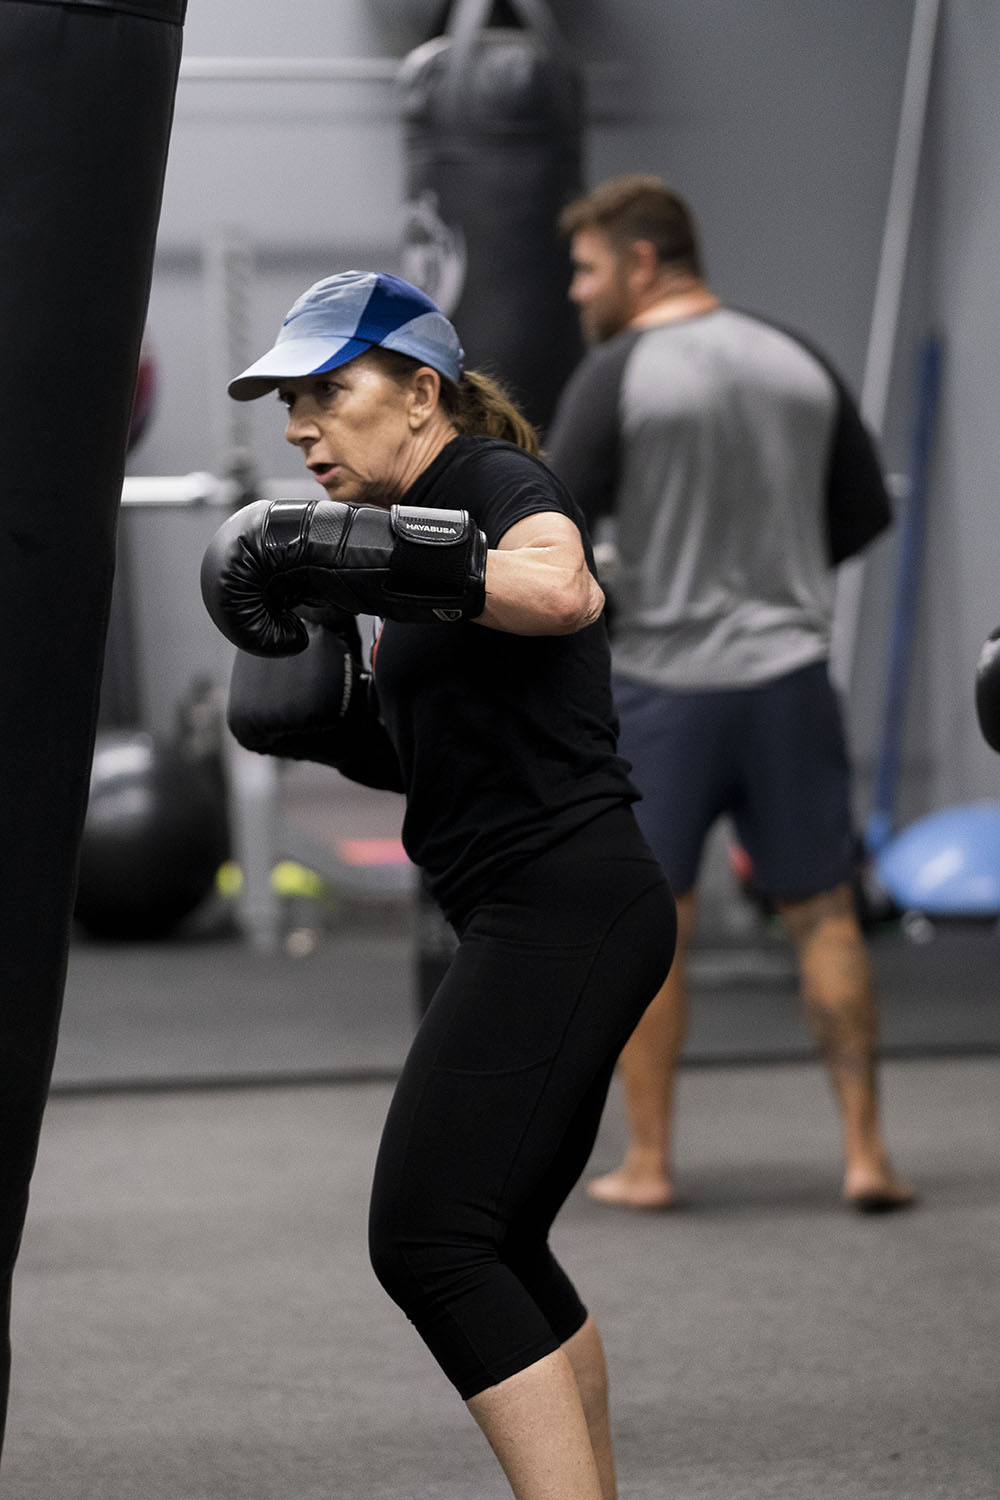 cardio kickboxing for all ages in east valley